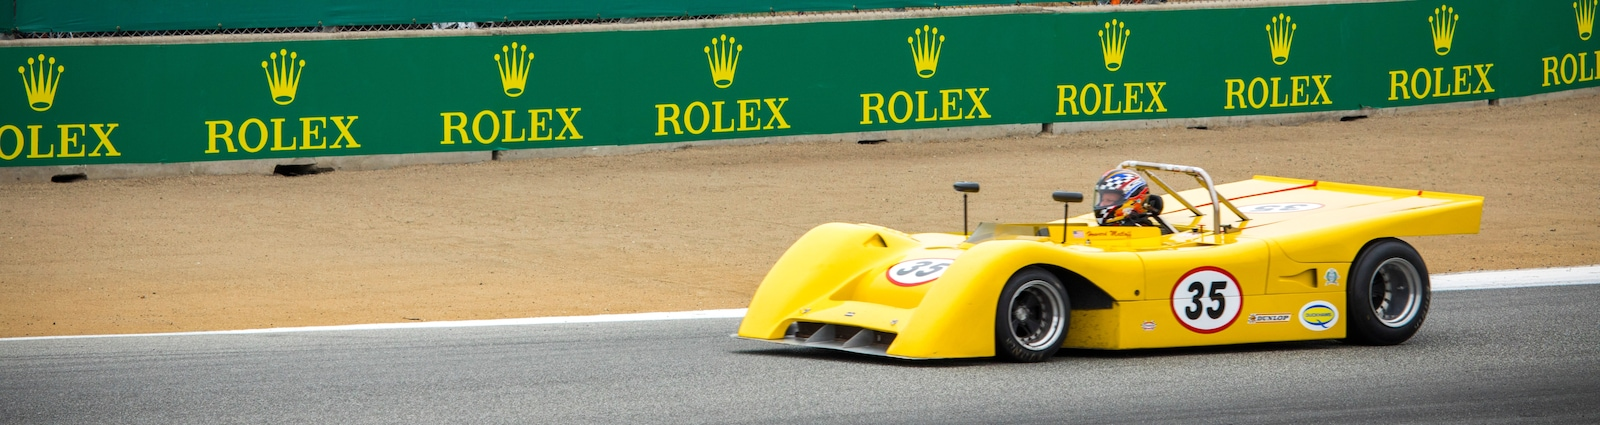 This year's Rolex Monterety Motorsports Reunion celebrated the 60th anniversary of Mazda Raceway Laguna Seca